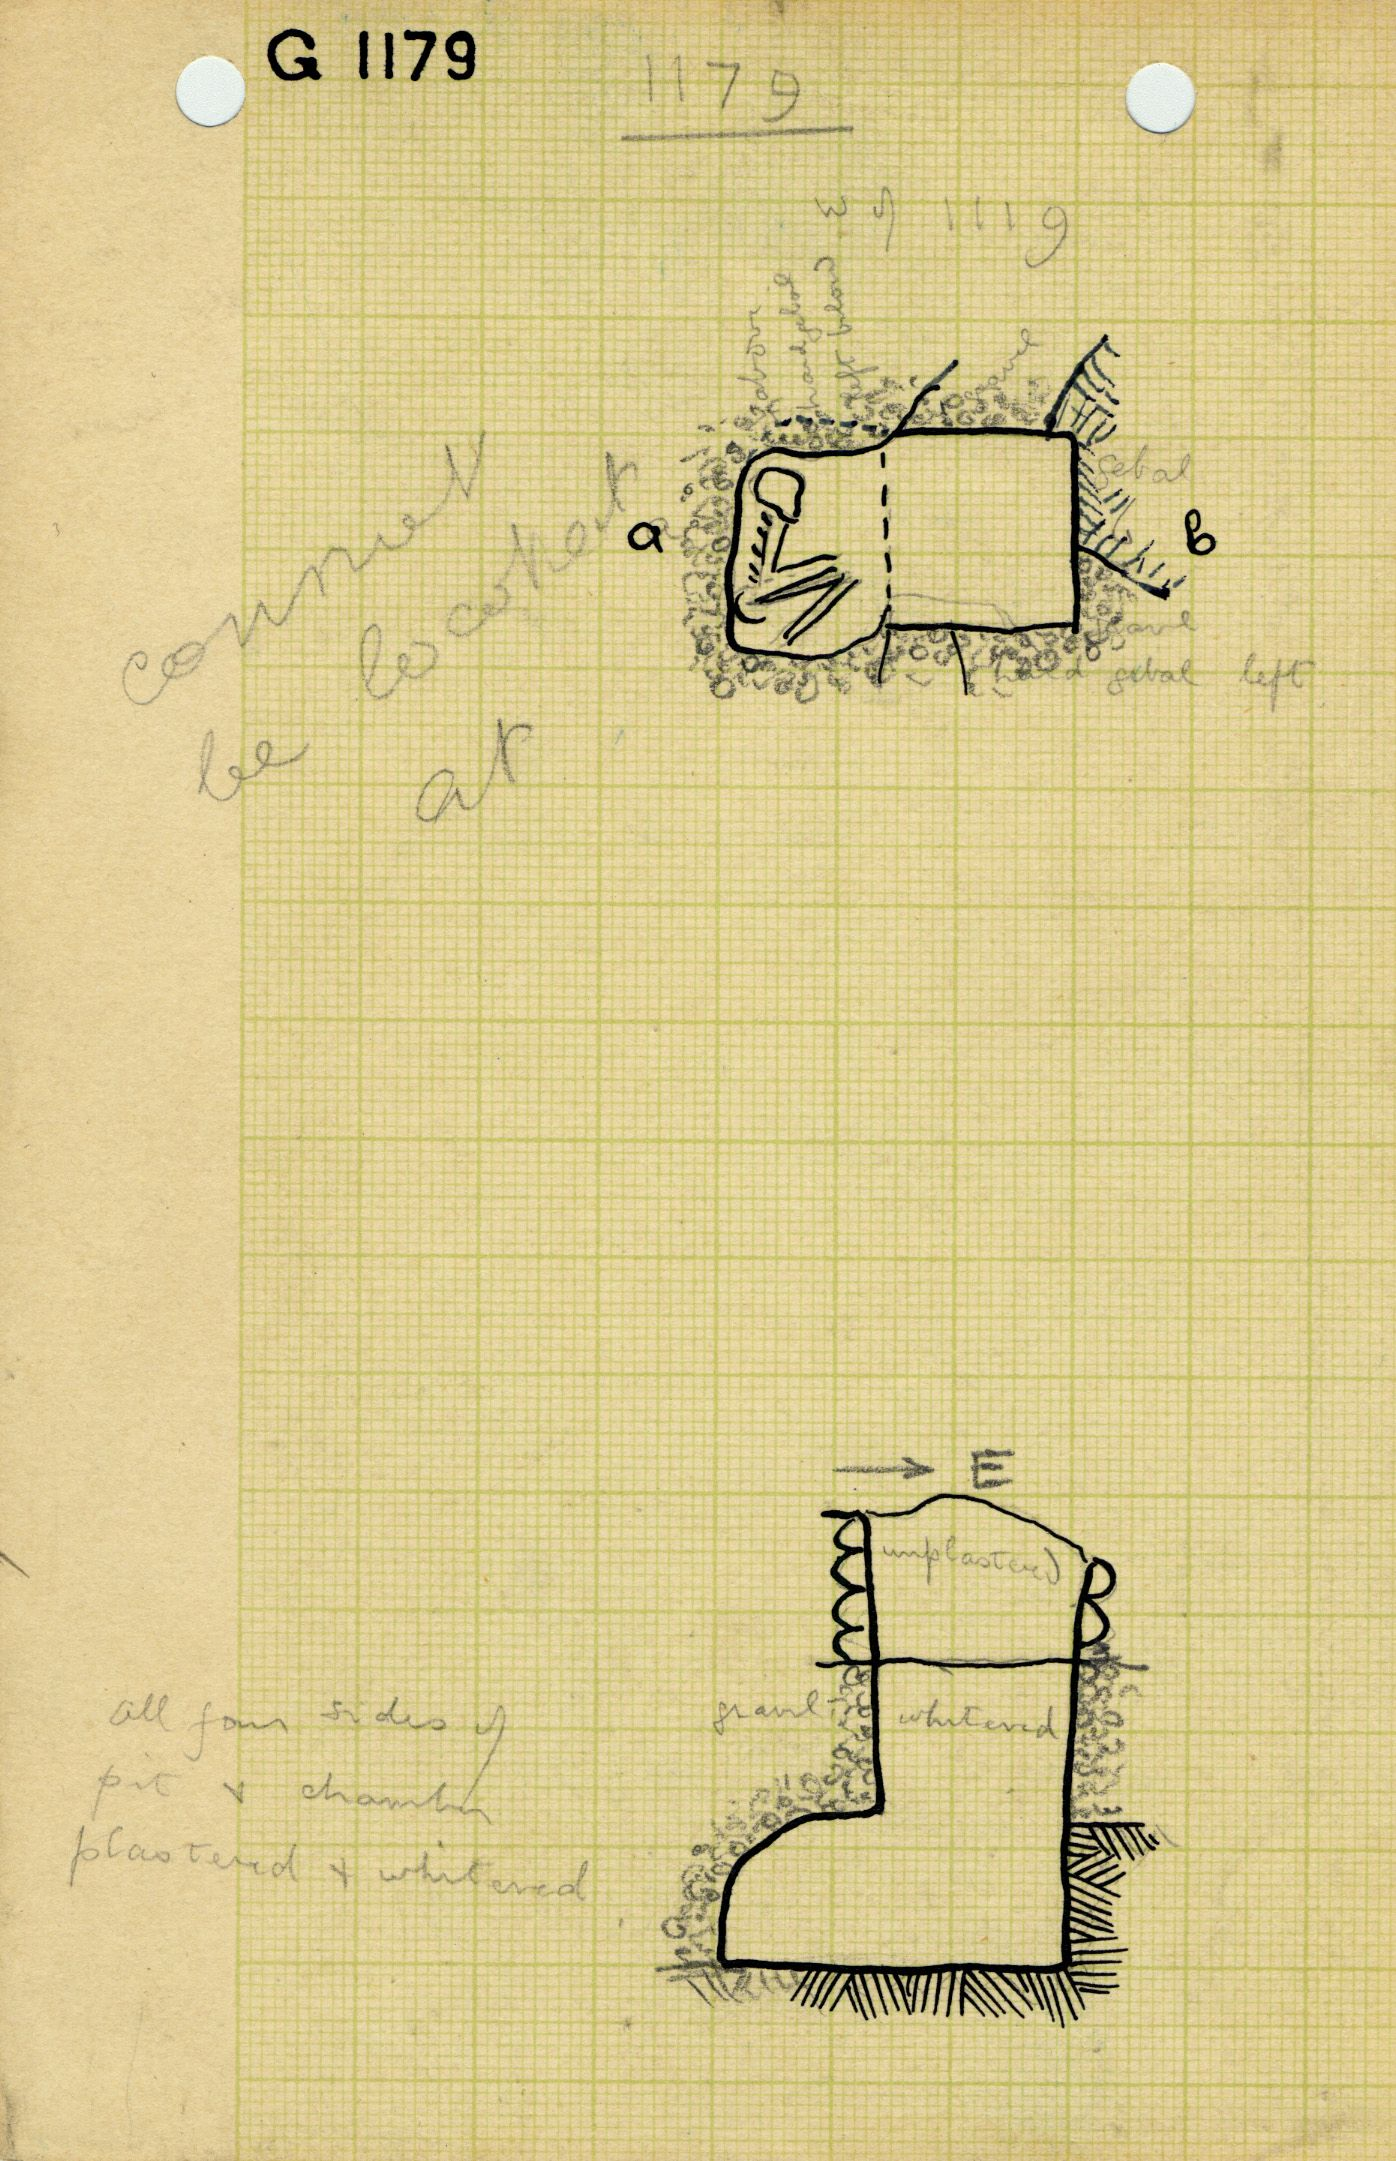 Maps and plans: G 1179, Shaft A